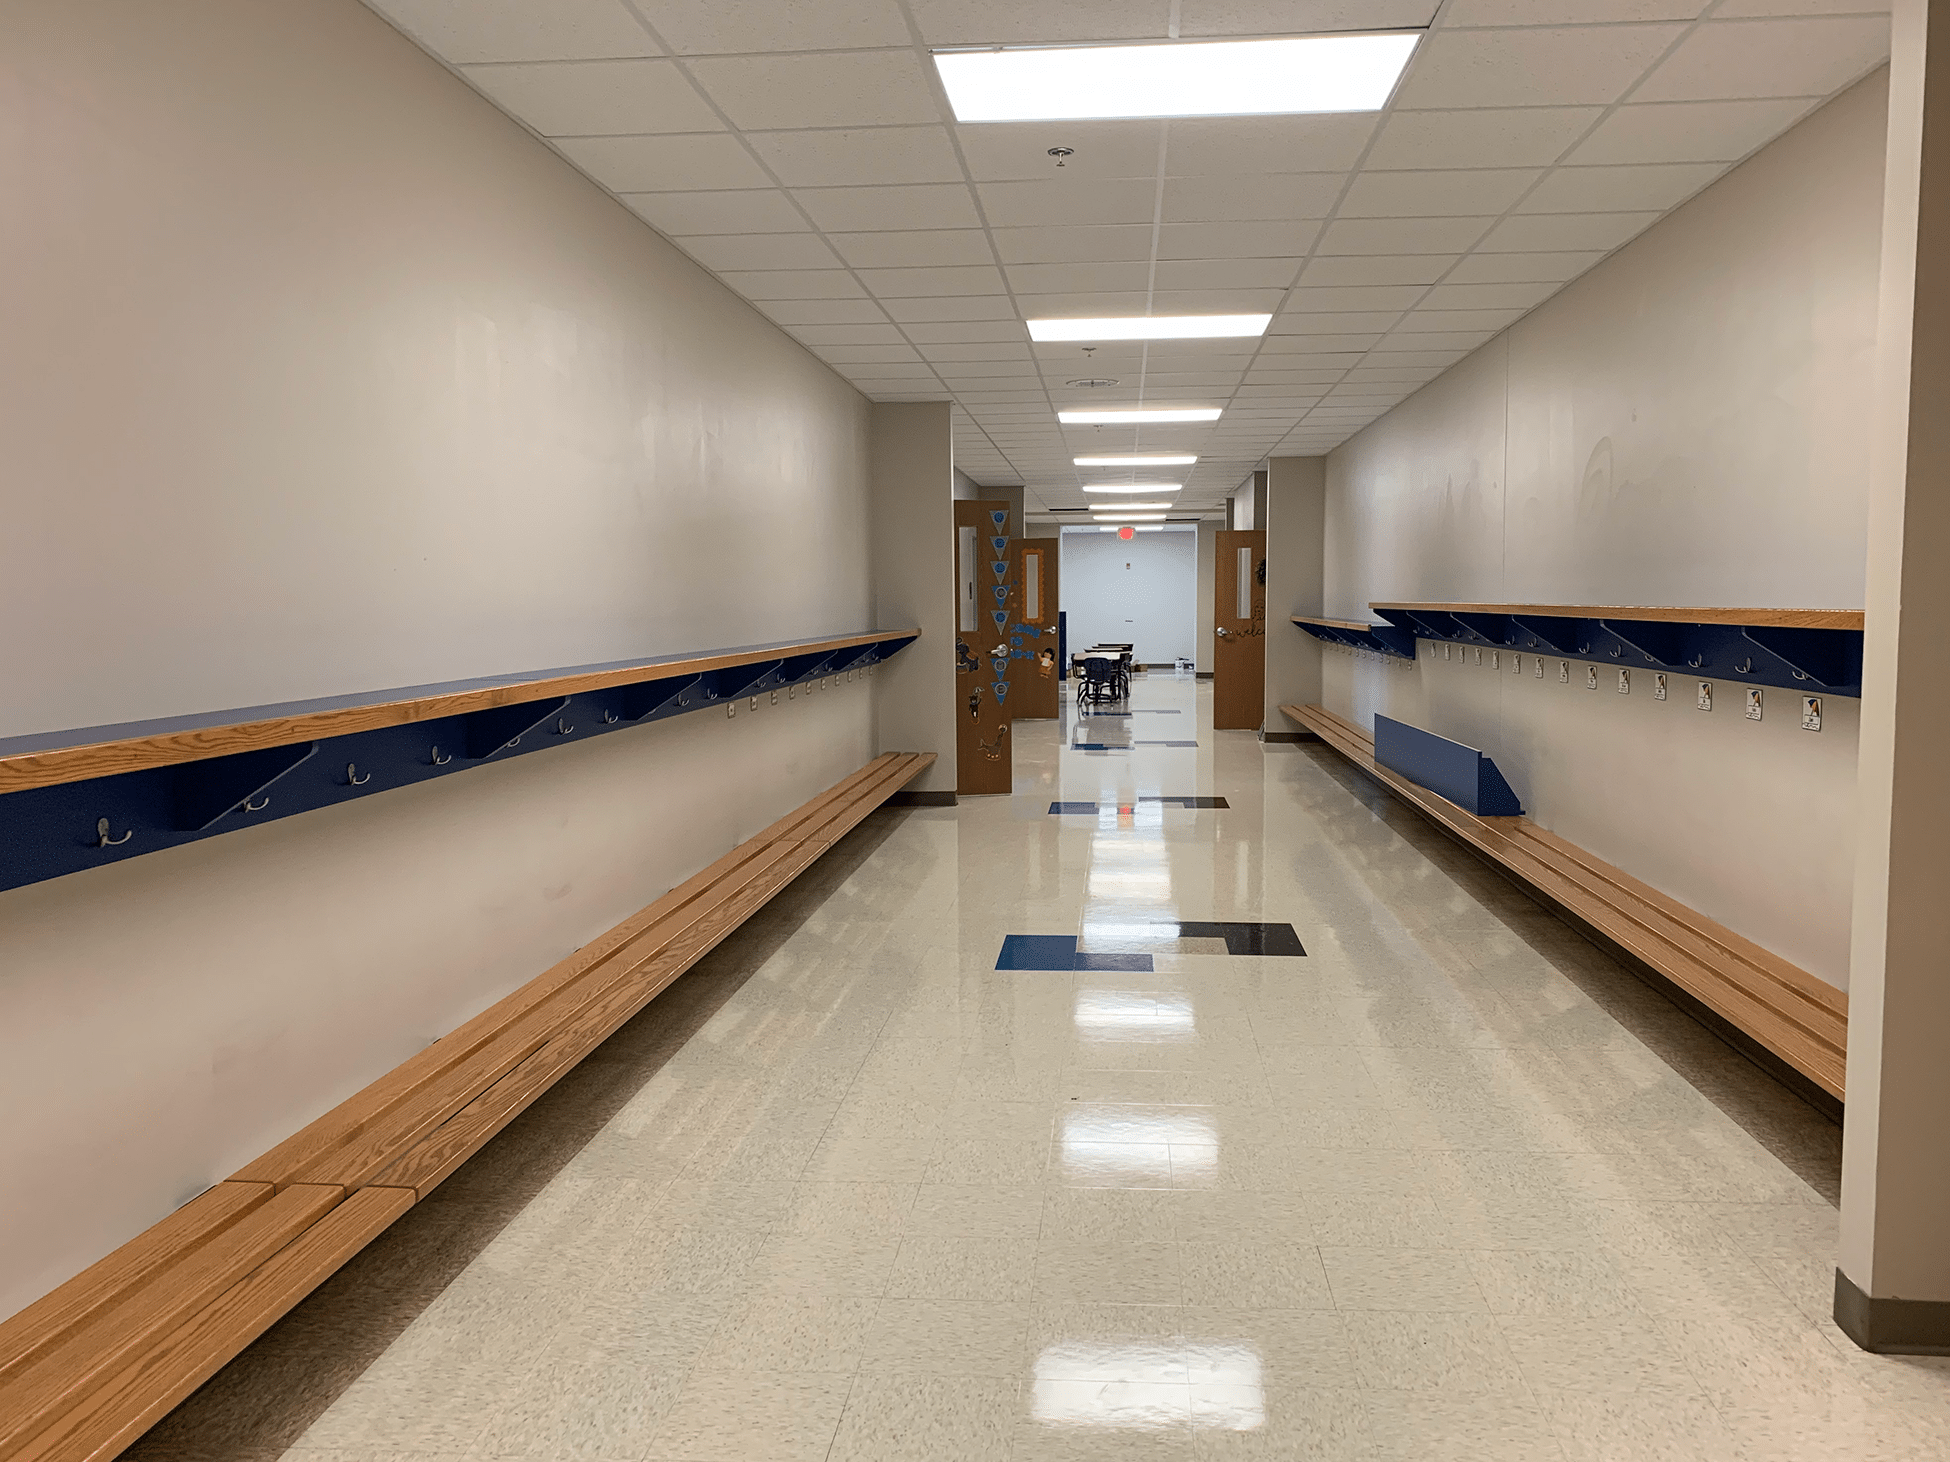 Central Wisconsin Christian School hallway within the school